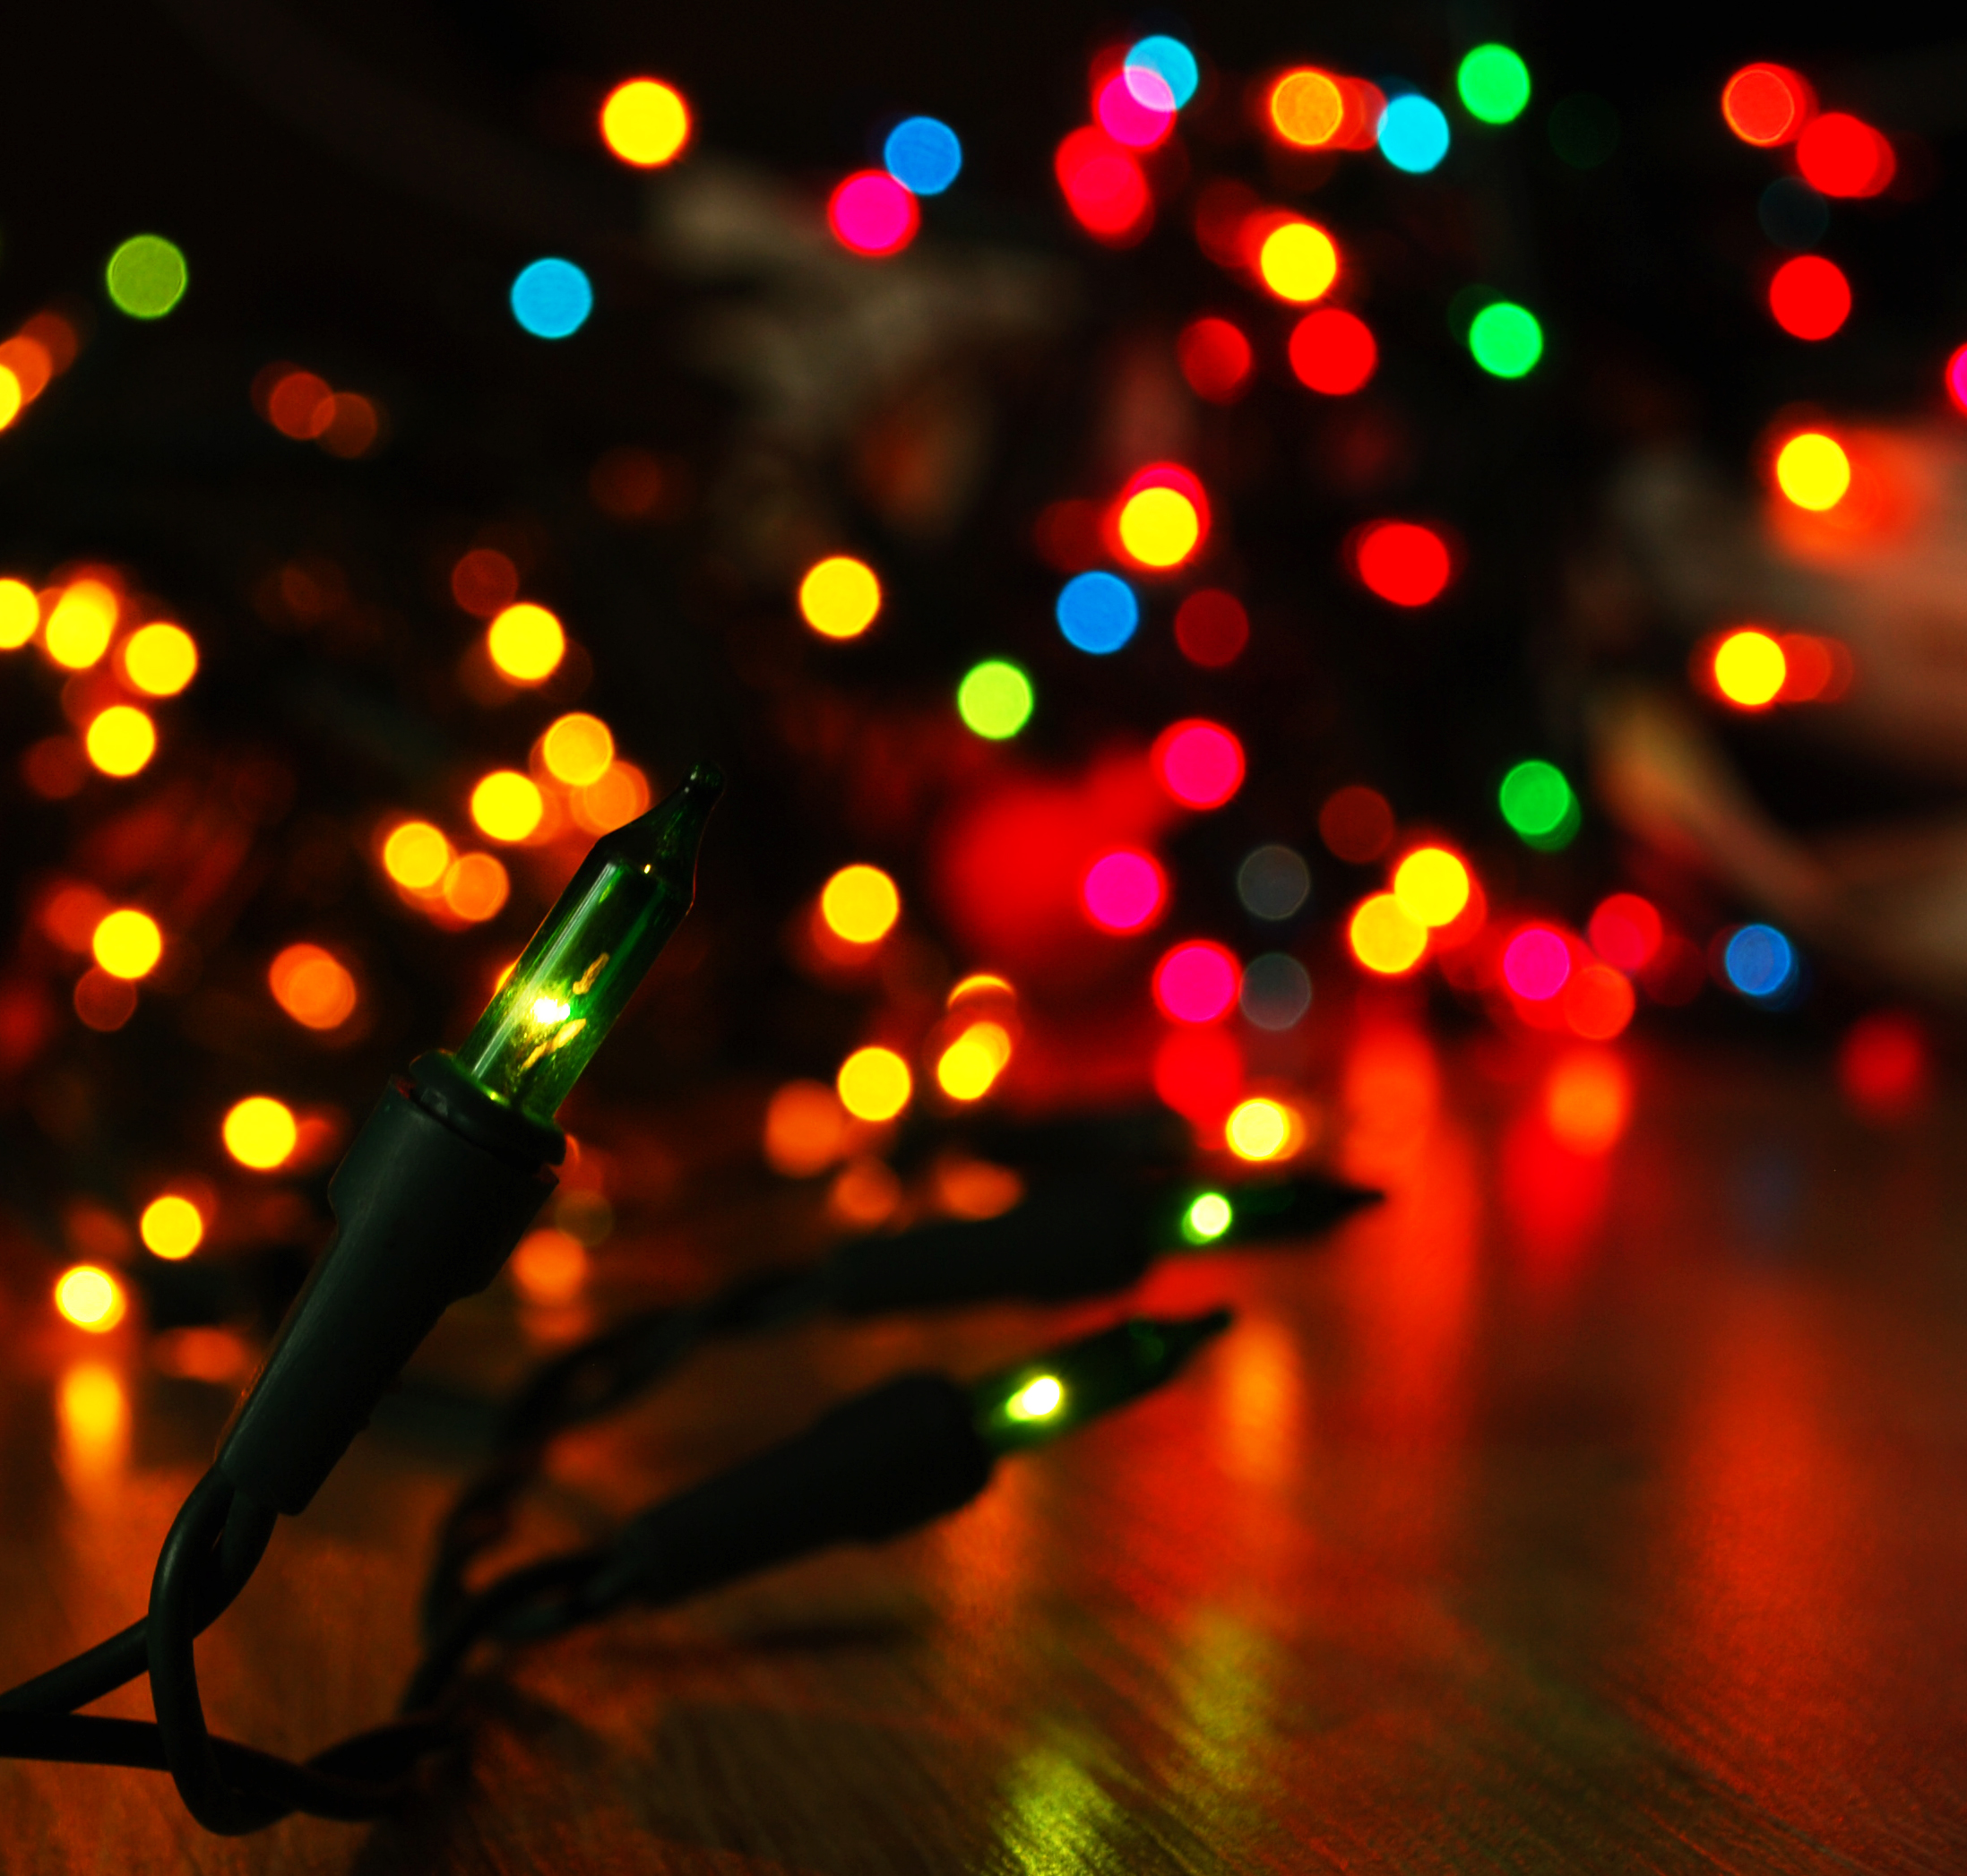 Lights Wallpapers Colorful Christmas Lights Myspace Backgrounds 2195x2094